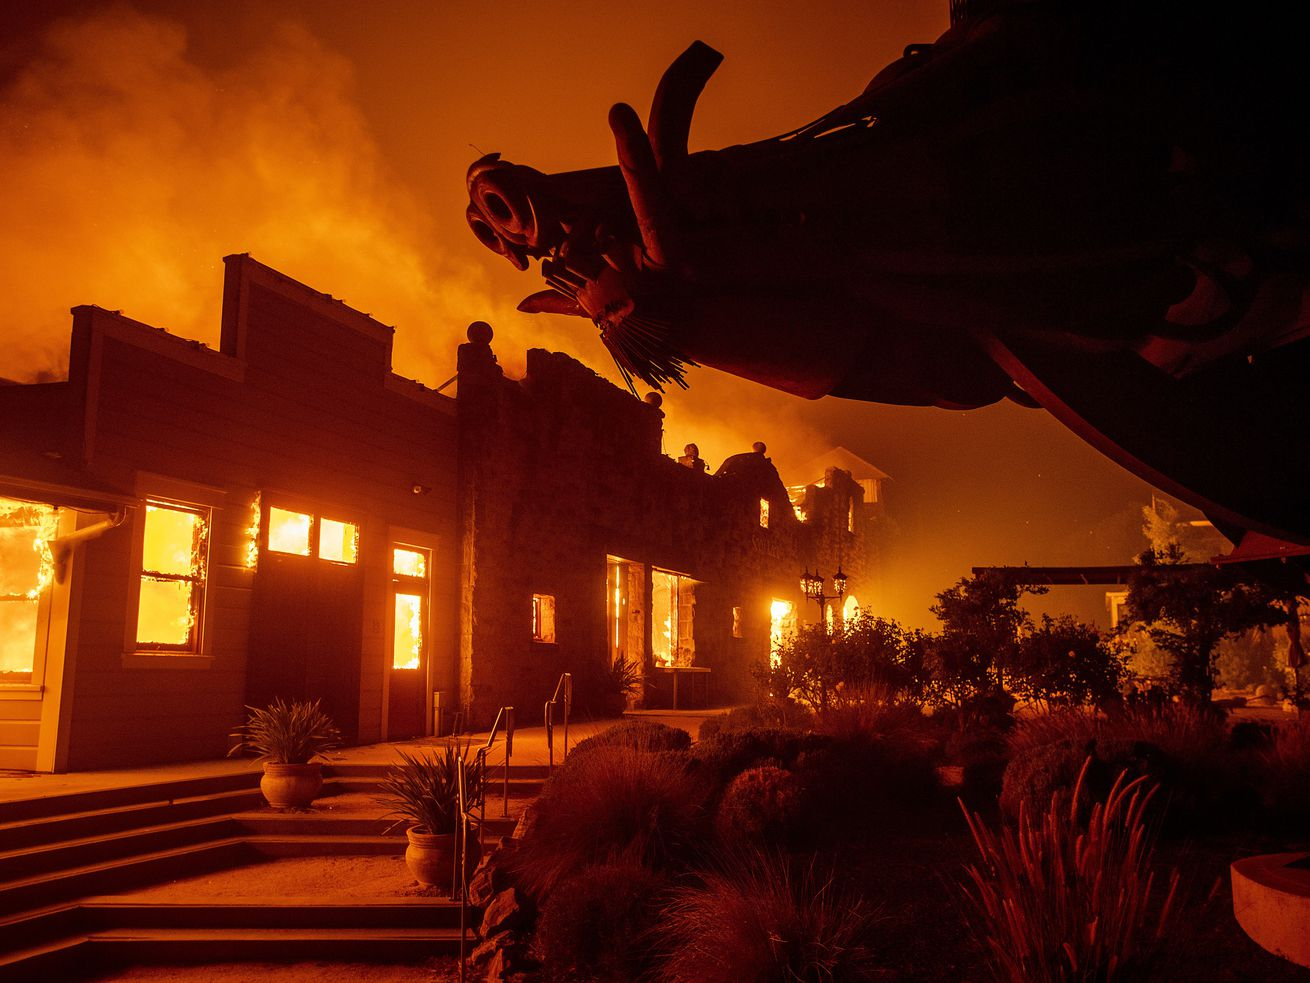 In this Oct. 27, 2019, file photo, flames from the Kincade Fire consume Soda Rock Winery in Healdsburg, Calif. A California prosecutor has charged troubled Pacific Gas & Electric with starting a 2019 wildfire.